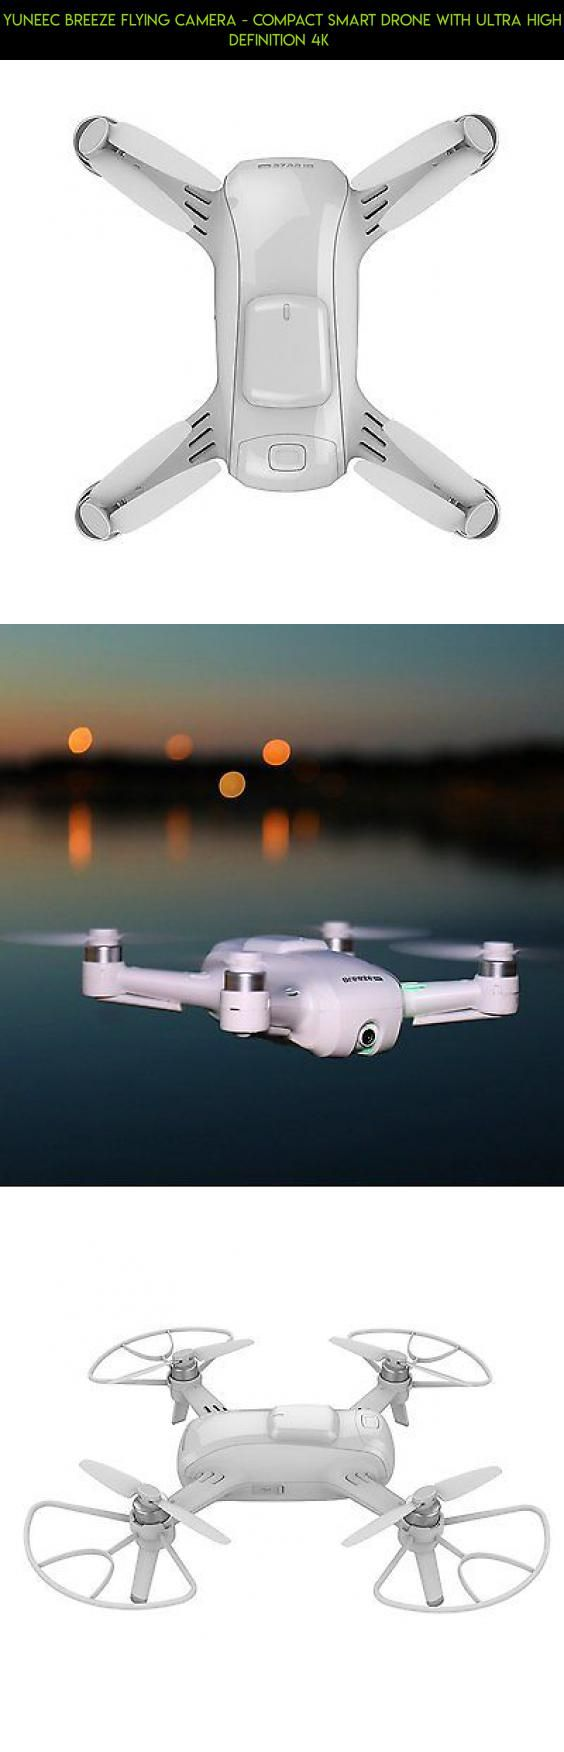 Yuneec Breeze Flying Camera - Compact Smart Drone with Ultra High Definition 4K  #breeze #drone #parts #camera #gadgets #tech #shopping #plans #4k #racing #kit #technology #fpv #products #yuneec